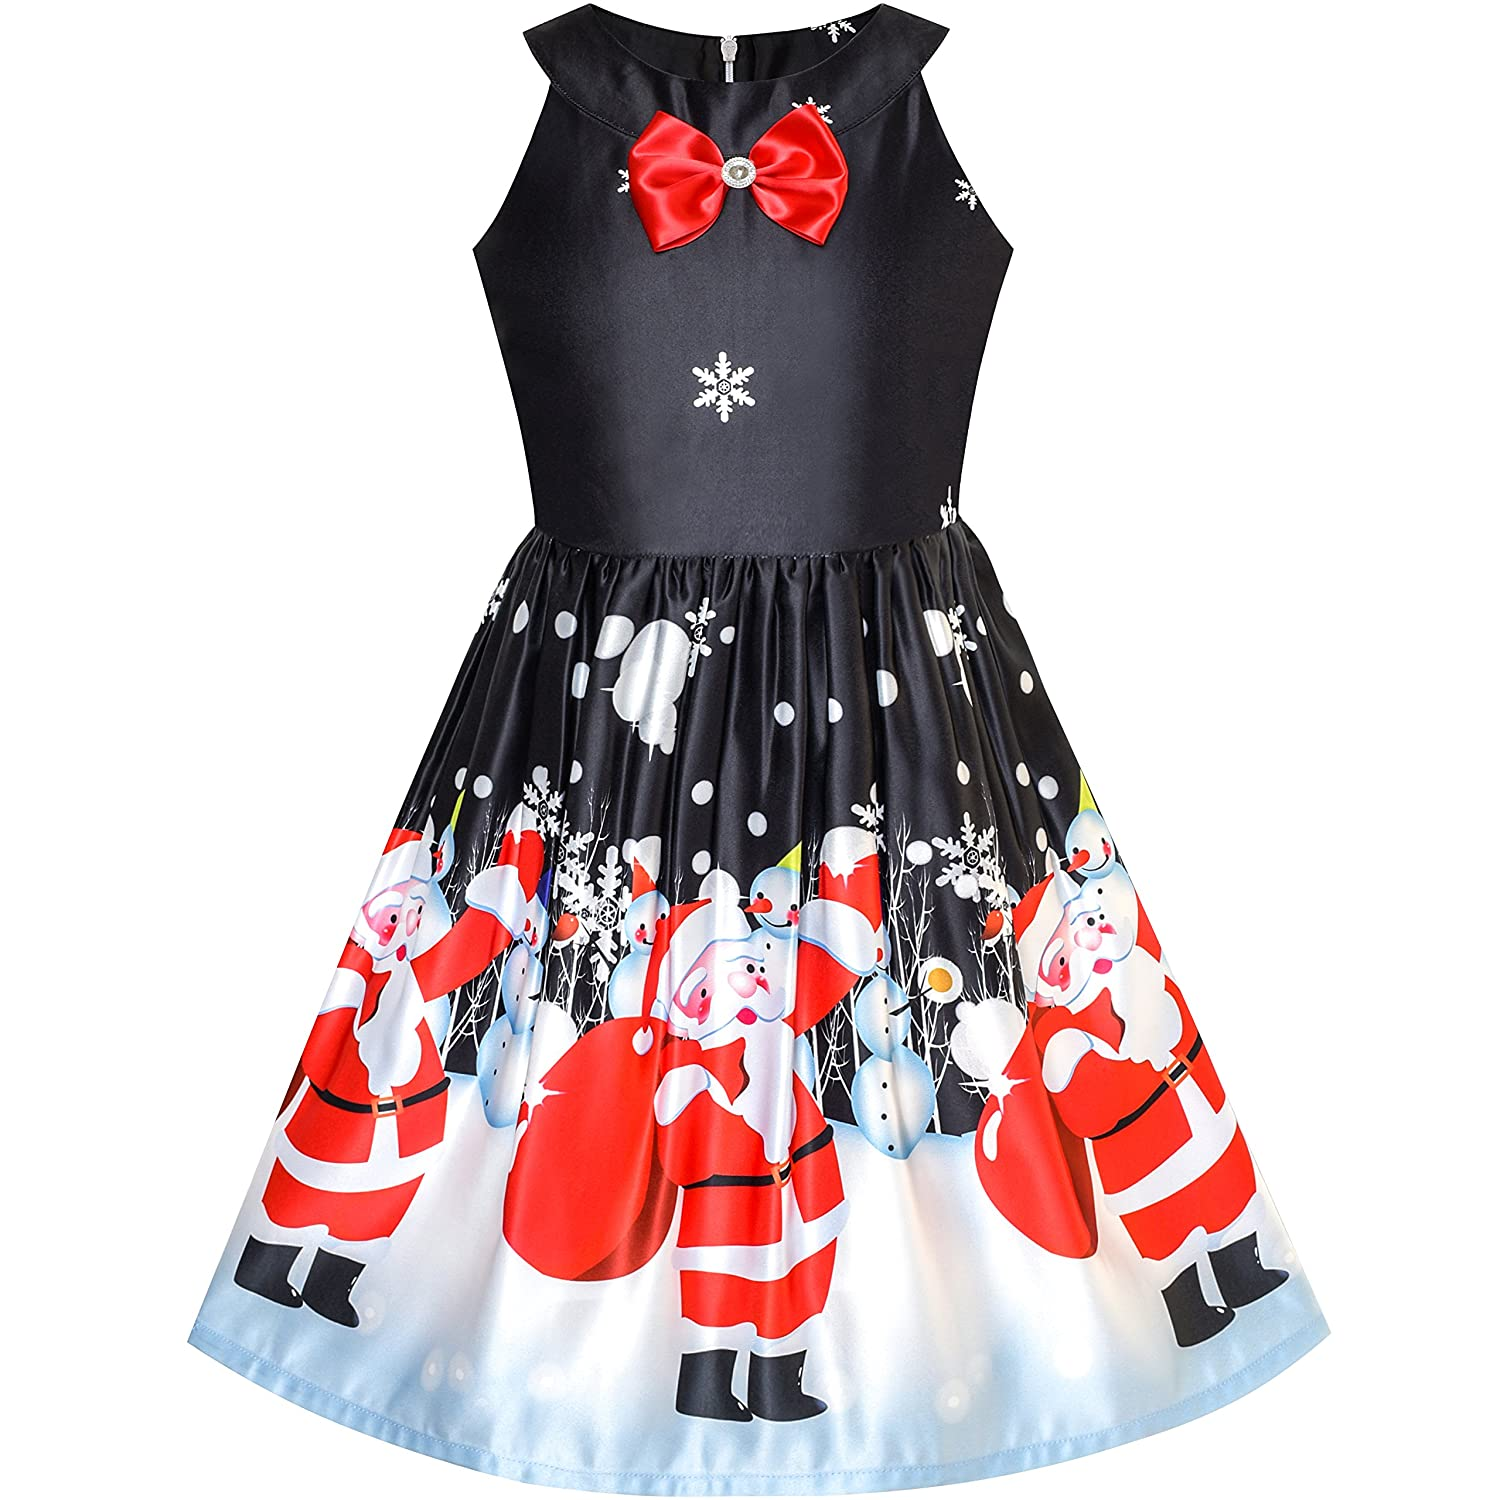 4bc2acb8ffb2 Girls\' dress size 7-14 suitable for age 7 to 14 years girls. Please read  detail size measurement ...